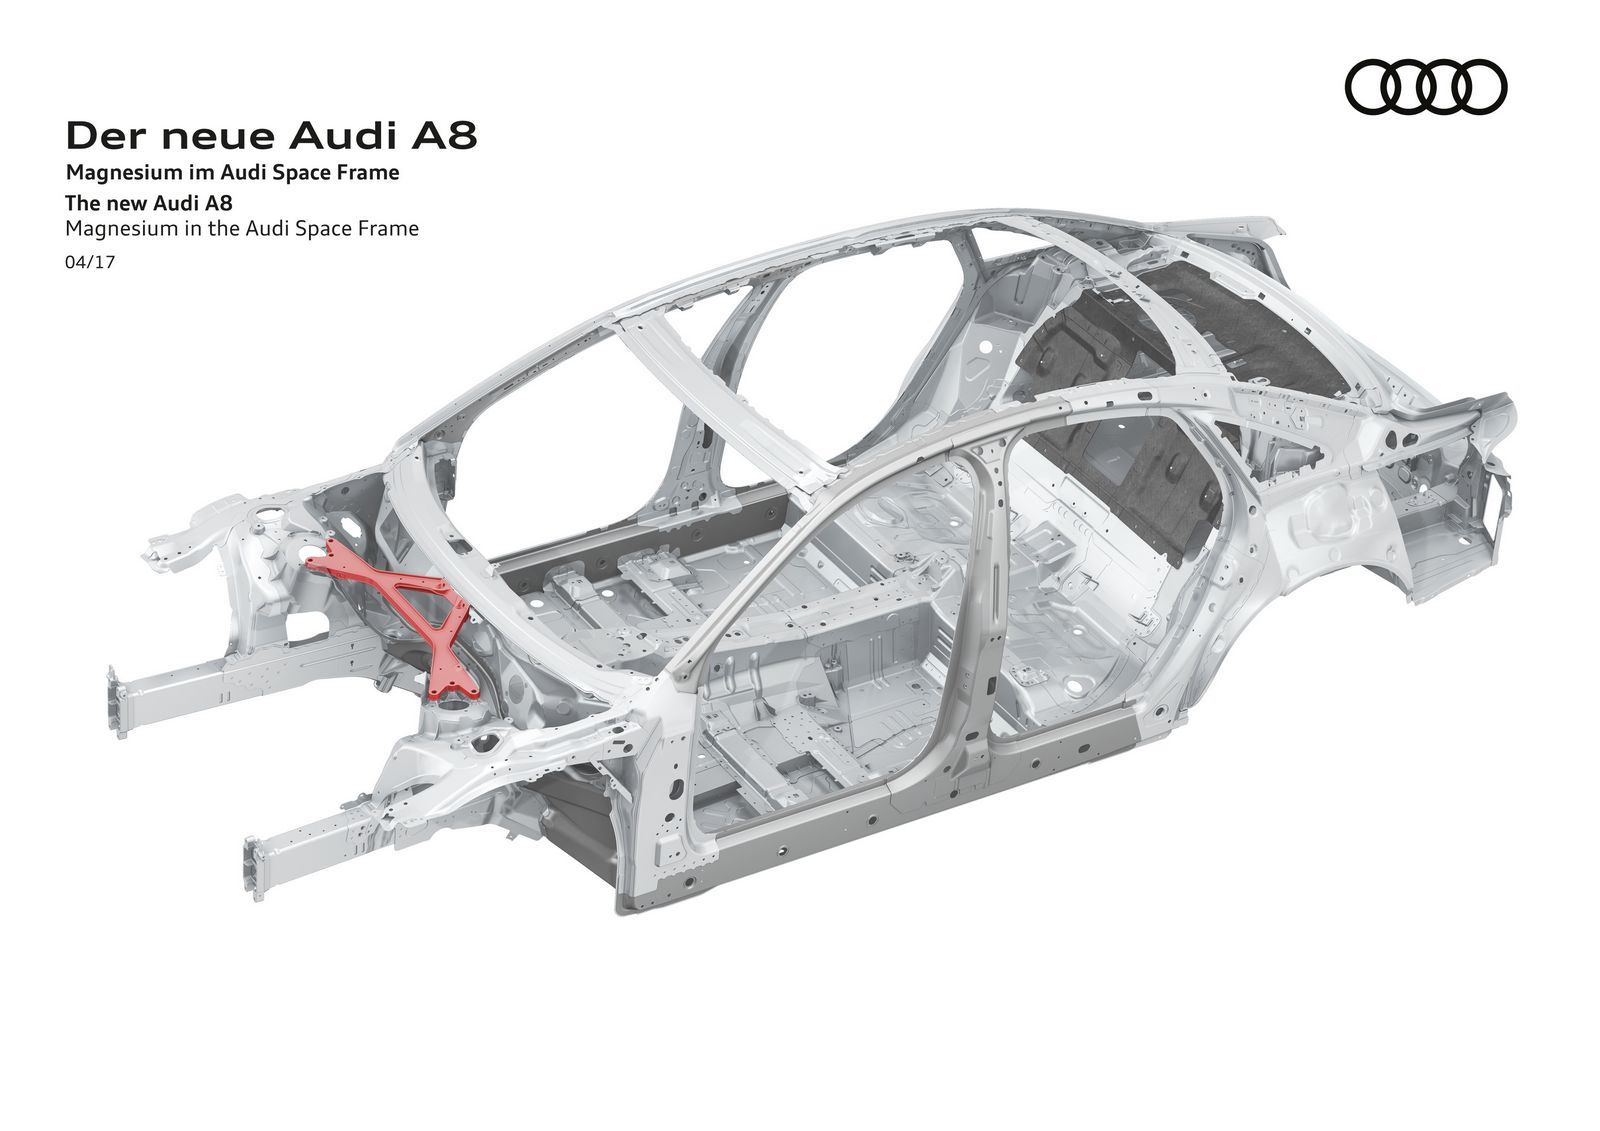 Magnesium in the Audi Space Frame